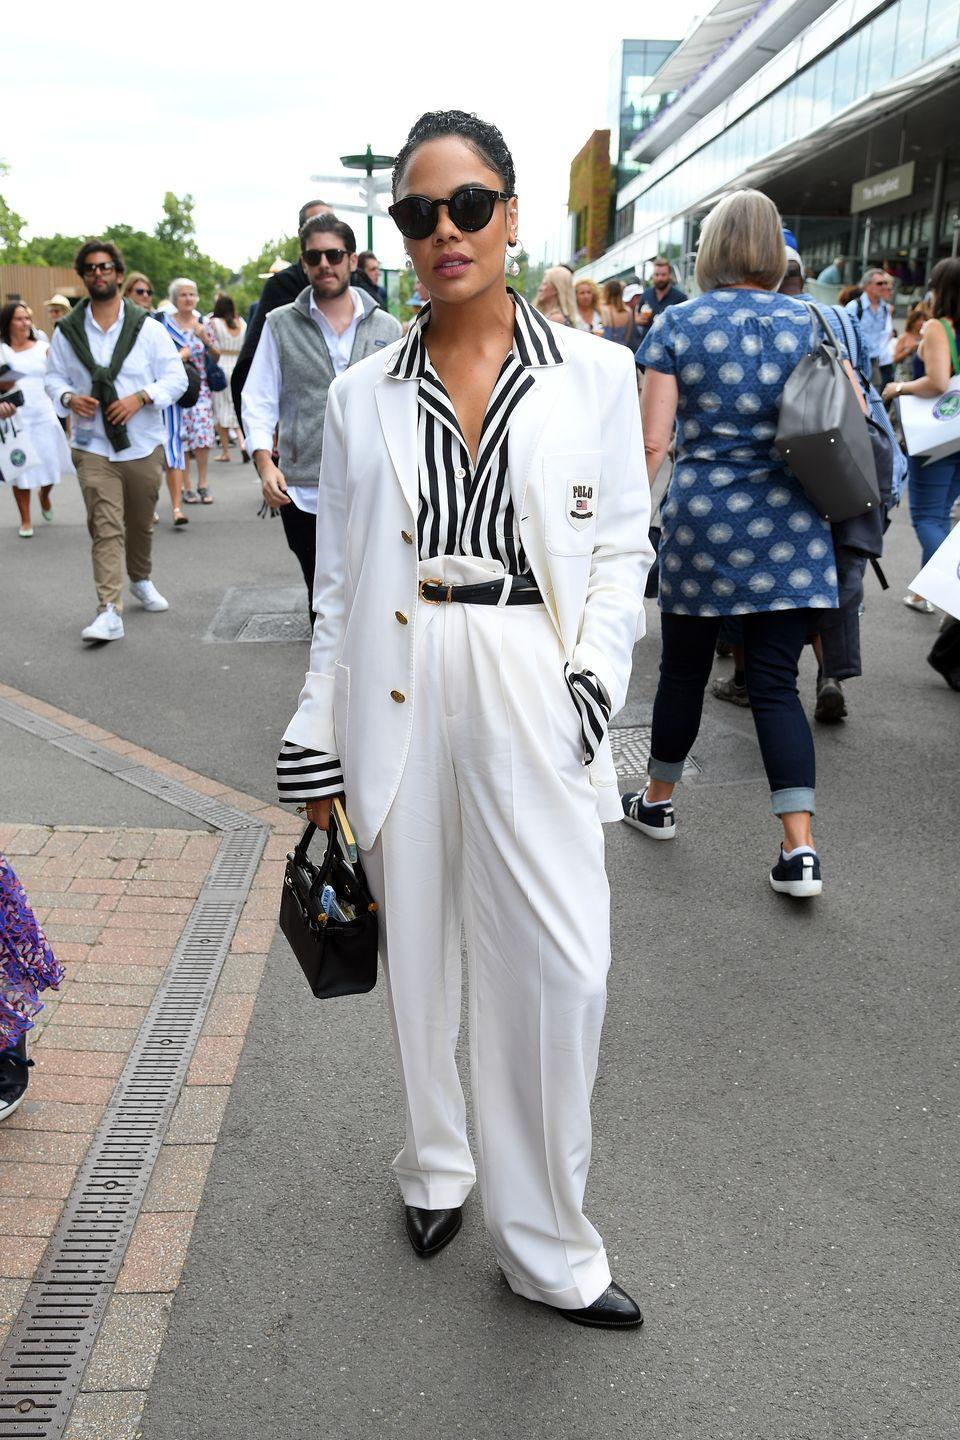 """<p>Fresh from the <a href=""""https://www.elle.com/uk/fashion/g26808945/stylish-celebs/?slide=4"""" rel=""""nofollow noopener"""" target=""""_blank"""" data-ylk=""""slk:front row of Couture Week"""" class=""""link rapid-noclick-resp"""">front row of Couture Week</a>, Tessa Thompson arrived looking as chic as ever in a Polo Ralph Lauren cream suit and pinstripe monochrome shirt.</p>"""